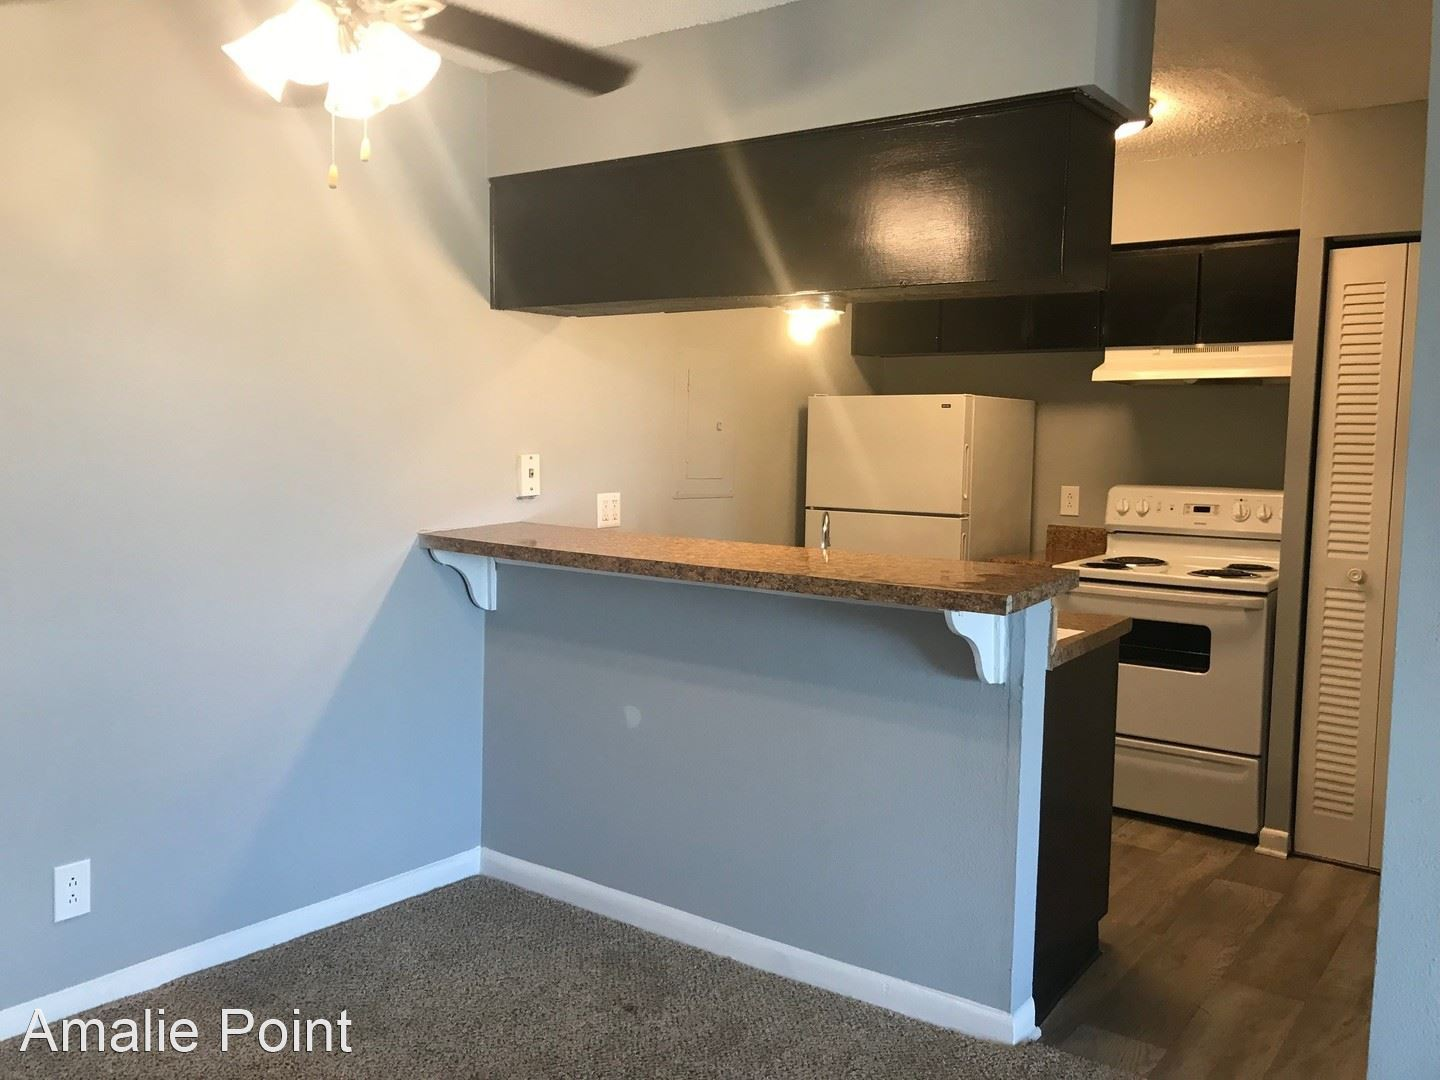 Apartments Near TSU Amalie Point for Tennessee State University Students in Nashville, TN